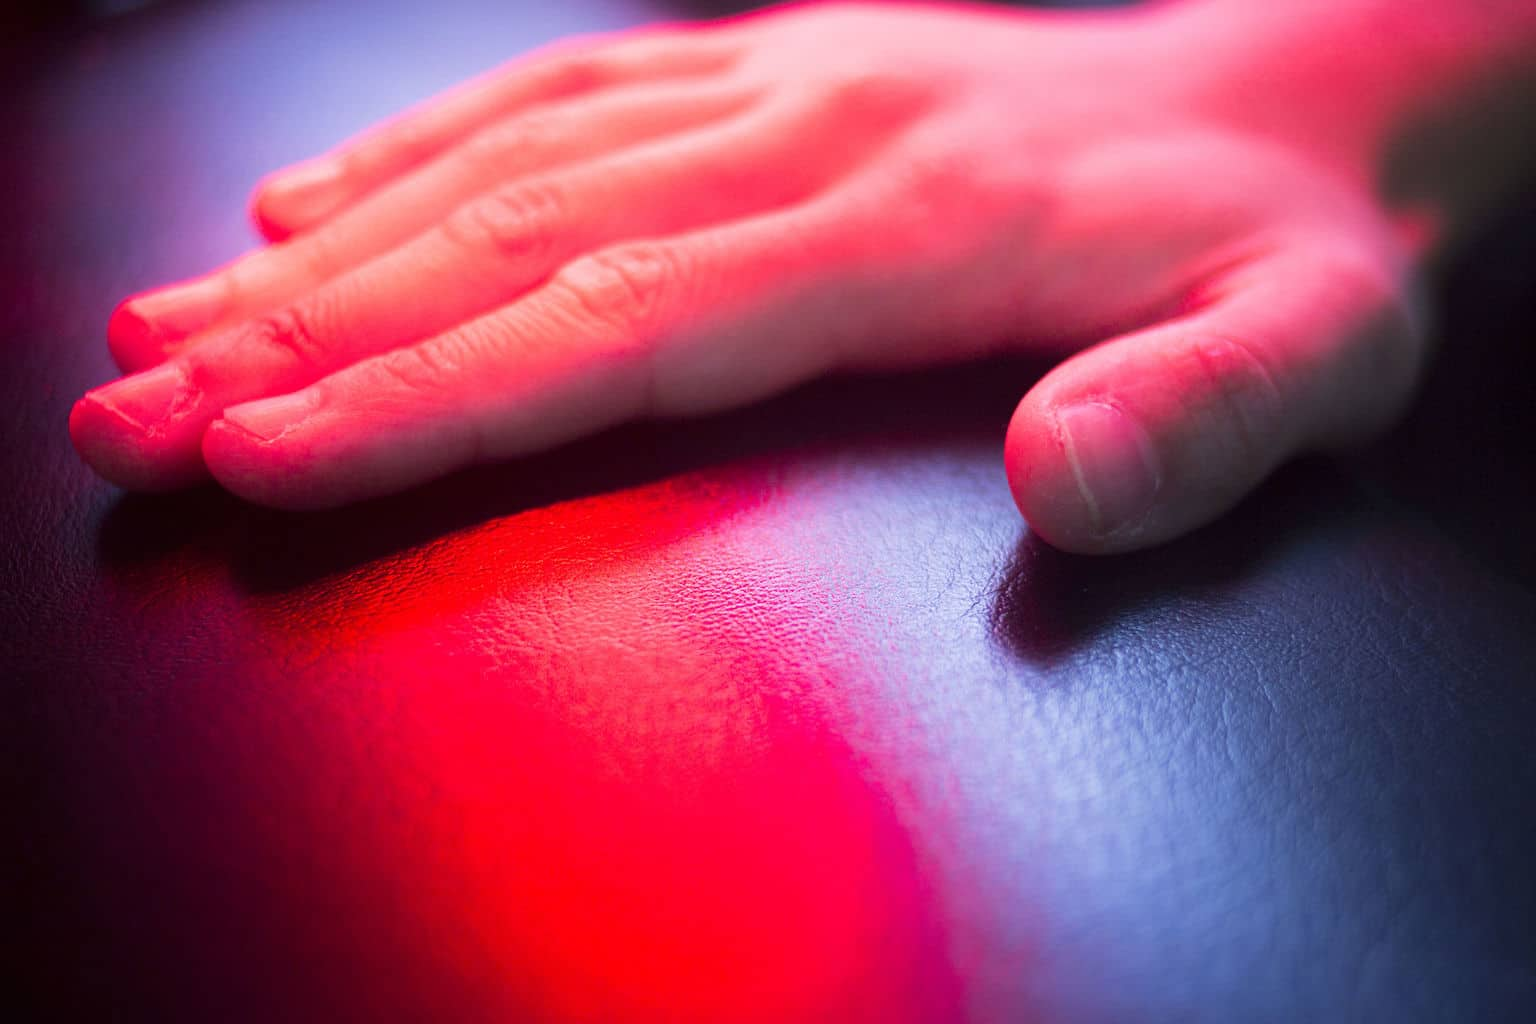 Red light therapy reverses artery plaque